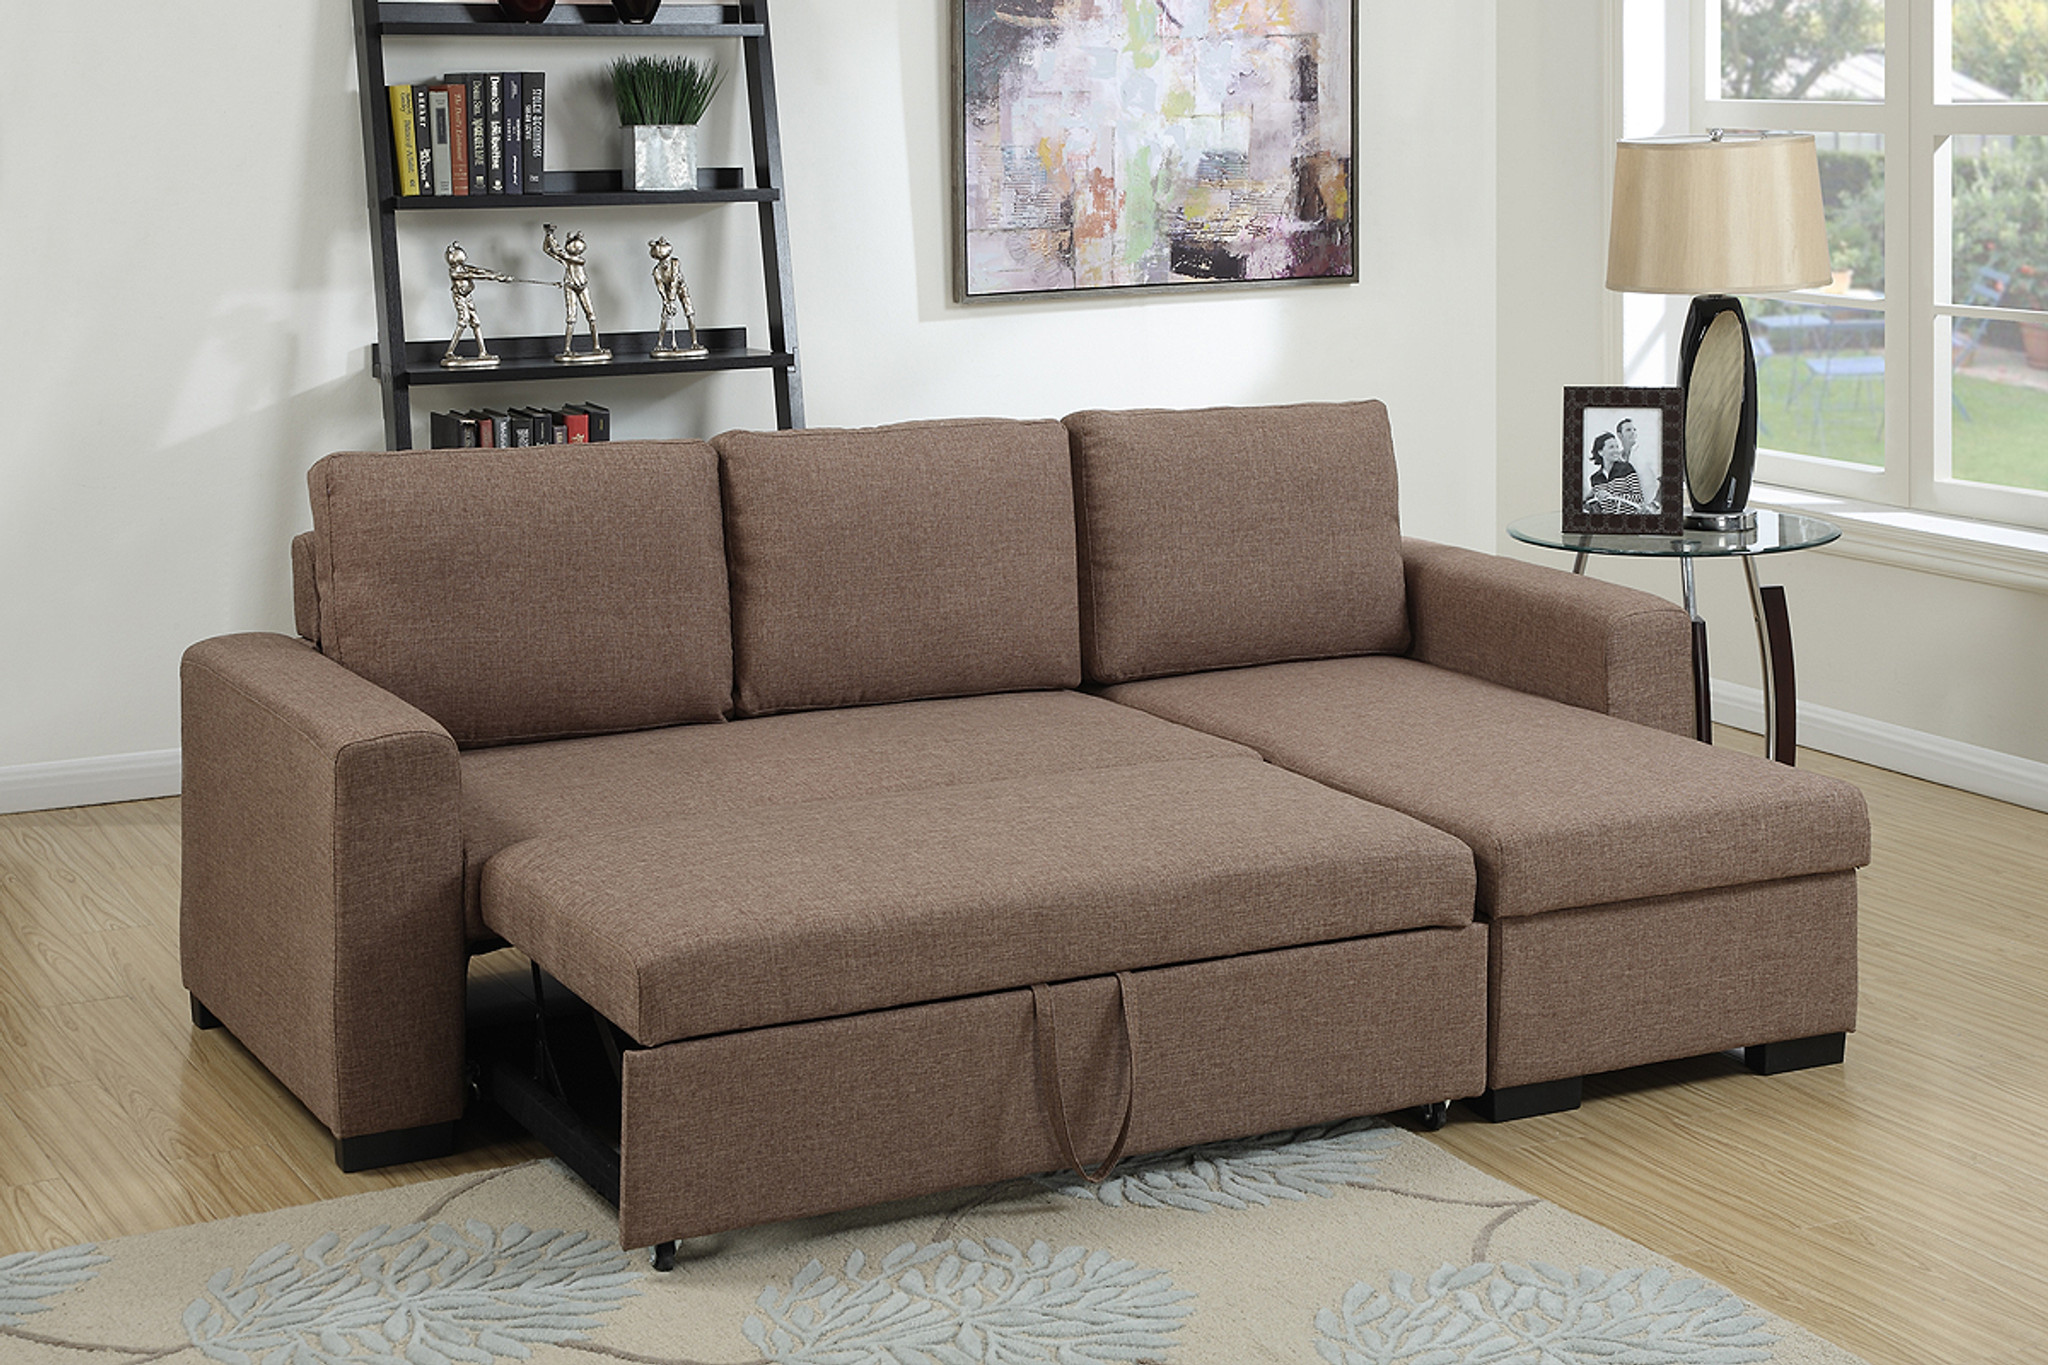 Picture of: Kassa Mall Home Furniture F6932 2pc Convertible Sectional With Pull Out Bed In Light Coffee Linen